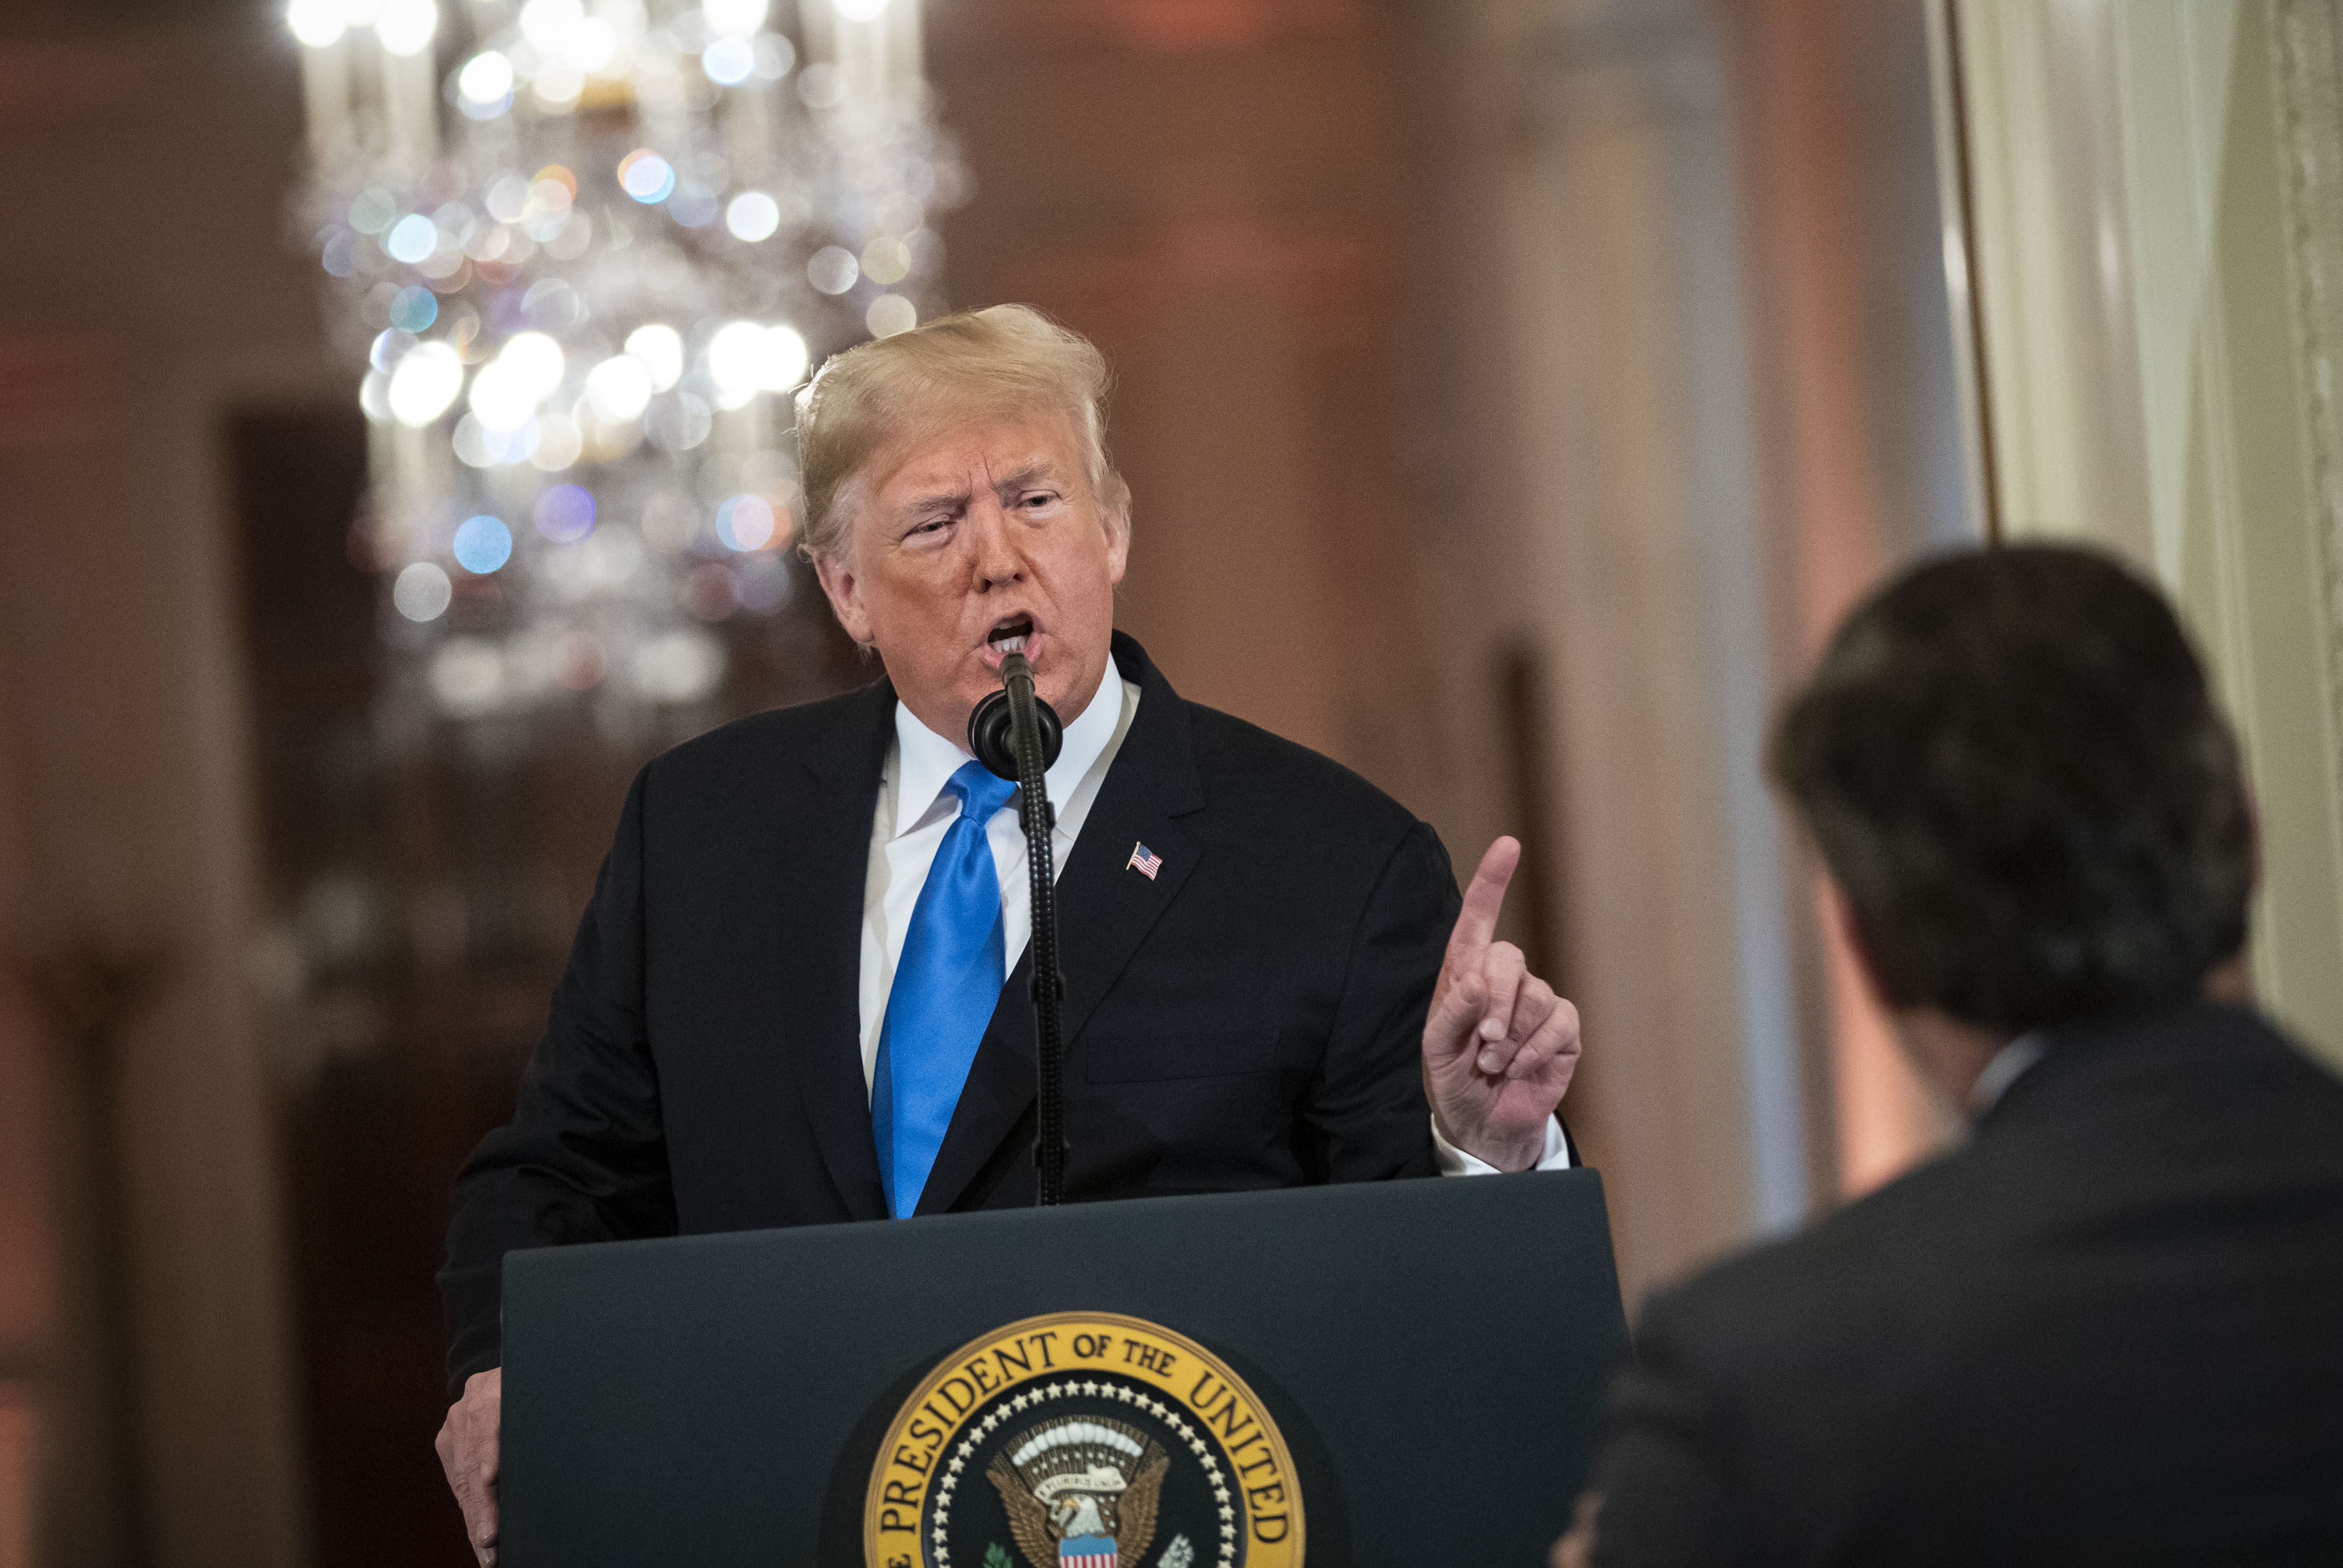 WASHINGTON, DC - NOVEMBER 07: (AFP OUT) U.S. President Donald Trump gets into an exchange with CNN reporter Jim Acosta during a news conference a day after the midterm elections on November 7, 2018 in the East Room of the White House in Washington, DC. Republicans kept the Senate majority but lost control of the House to the Democrats. Al Drago - Pool/Getty Images